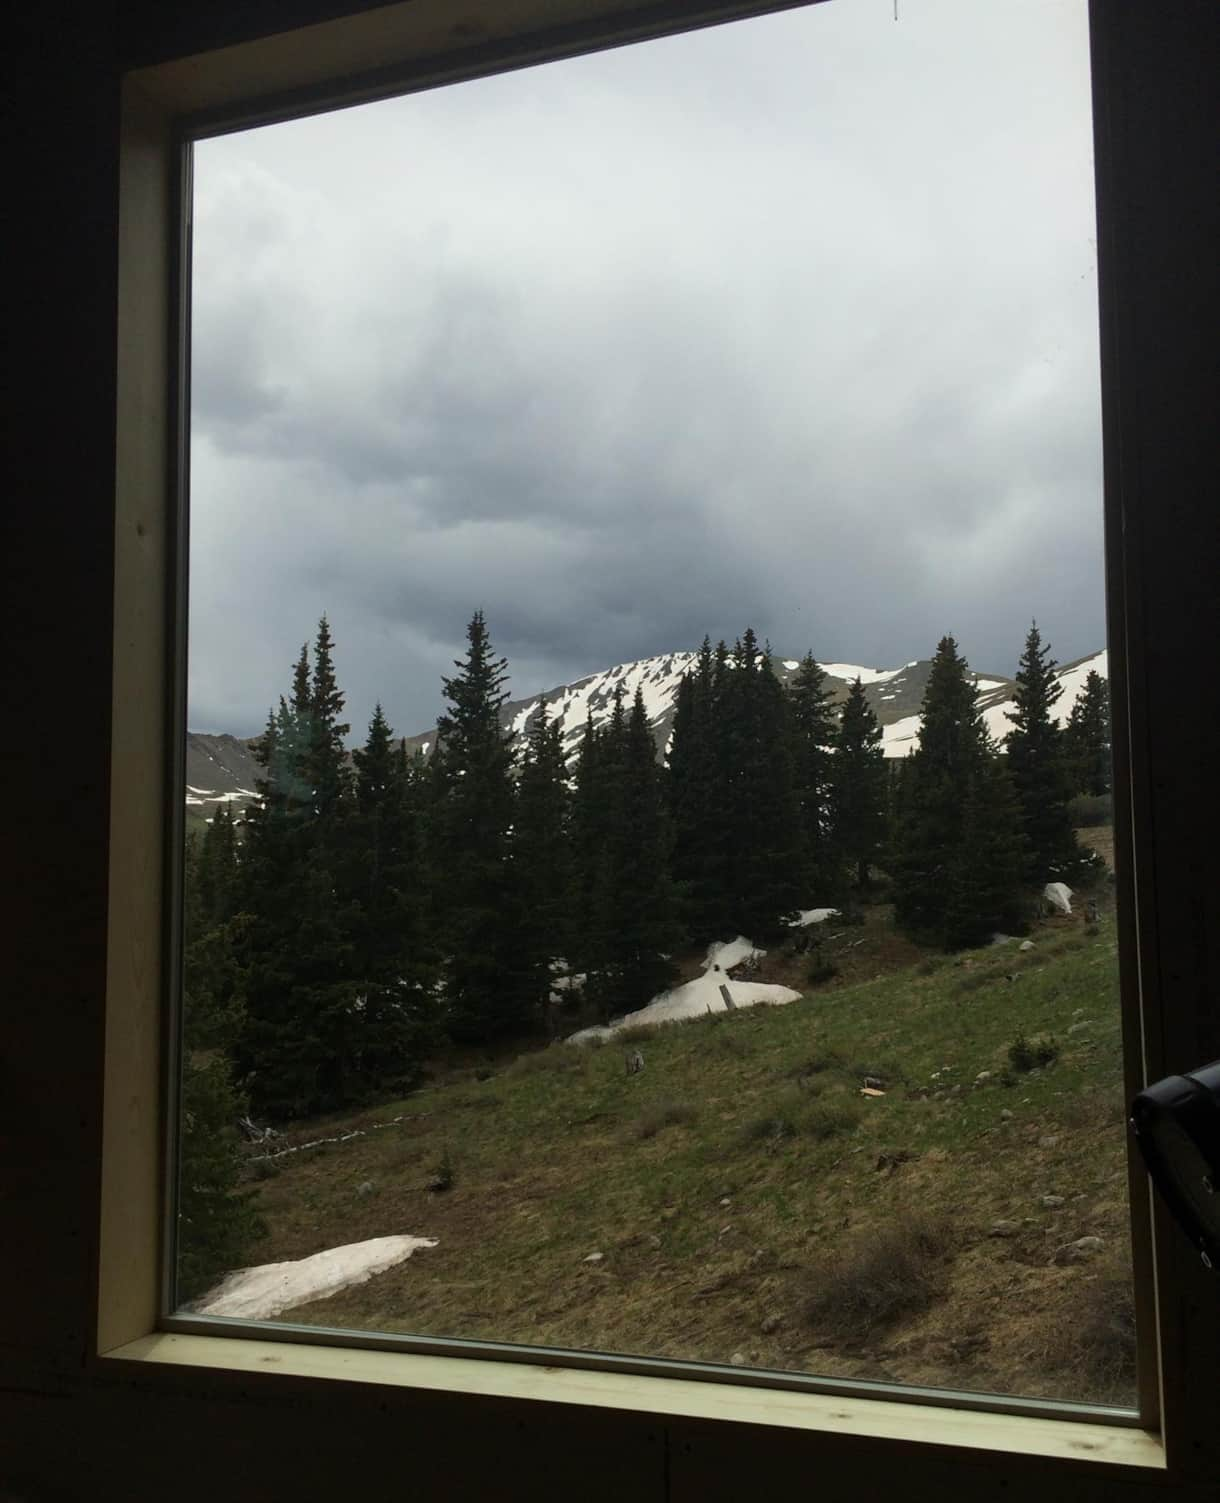 Watching a storm from the comfort of inside the Tundra Hut